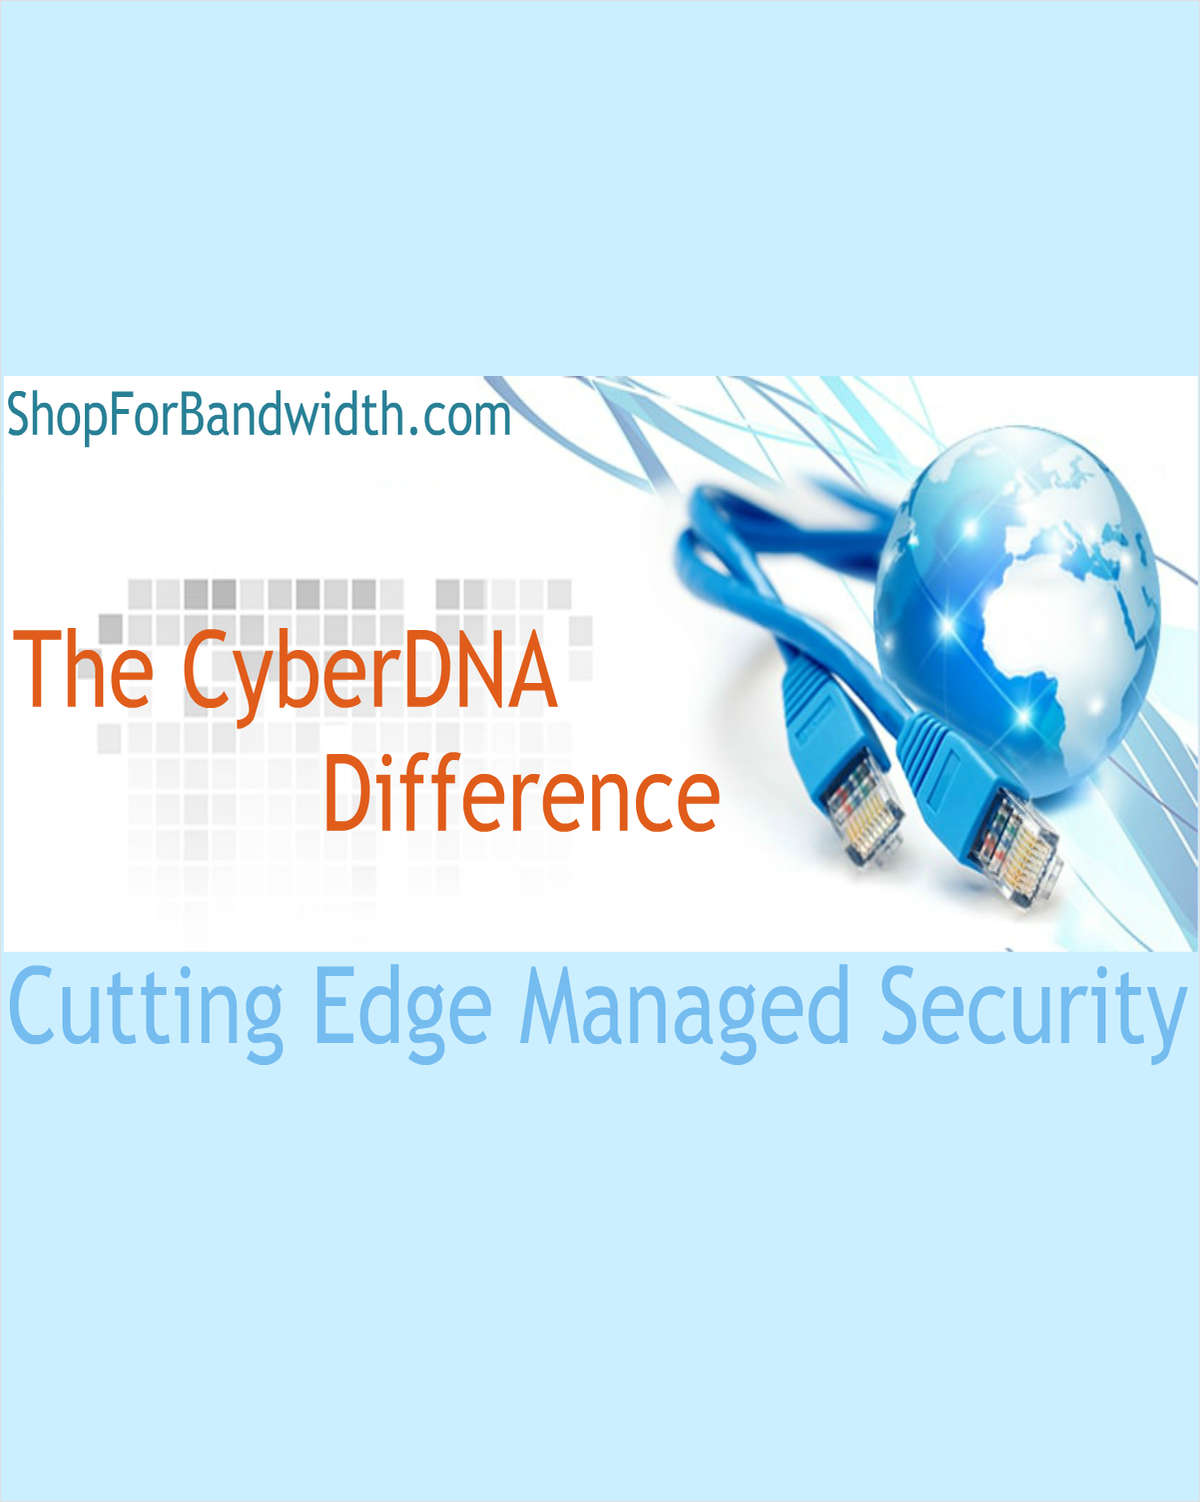 The Cutting Edge Managed Security Solution - The CyberDNA Difference